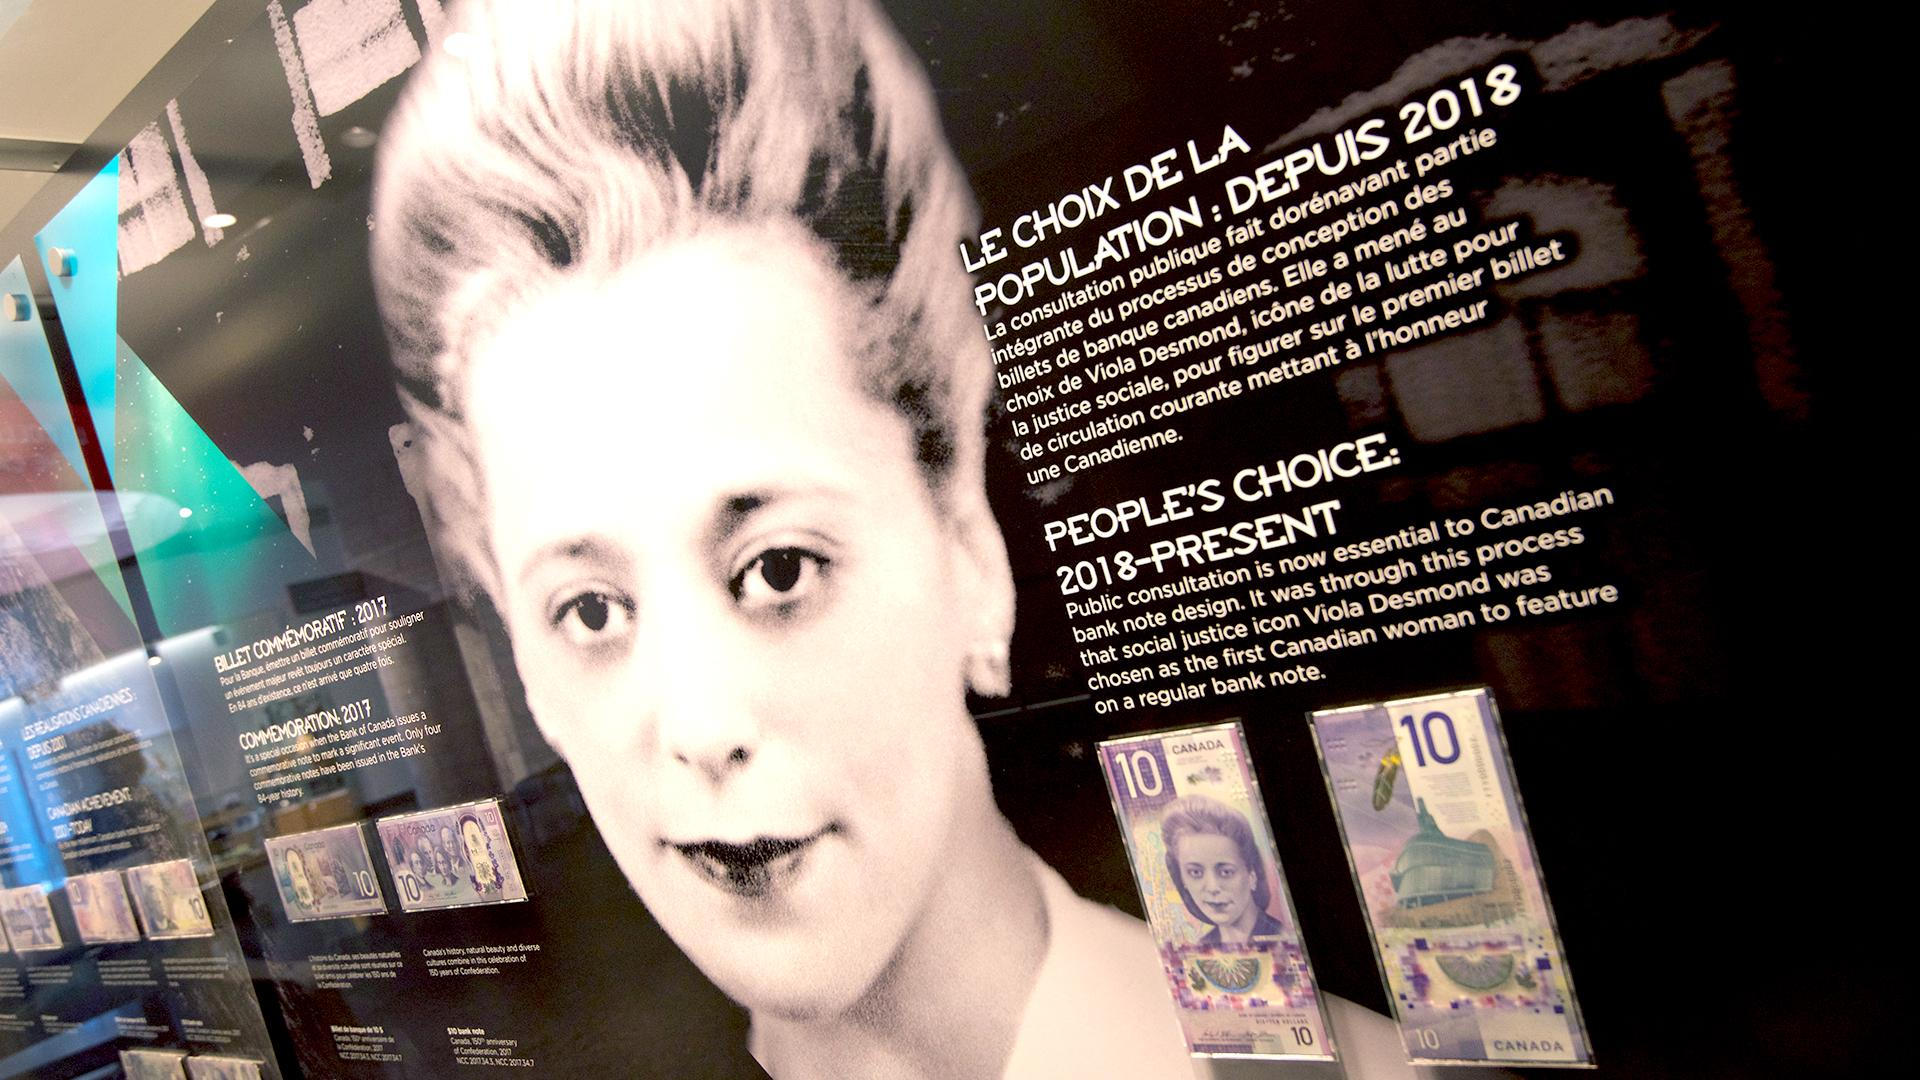 the new vertical note featuring Viola Desmond